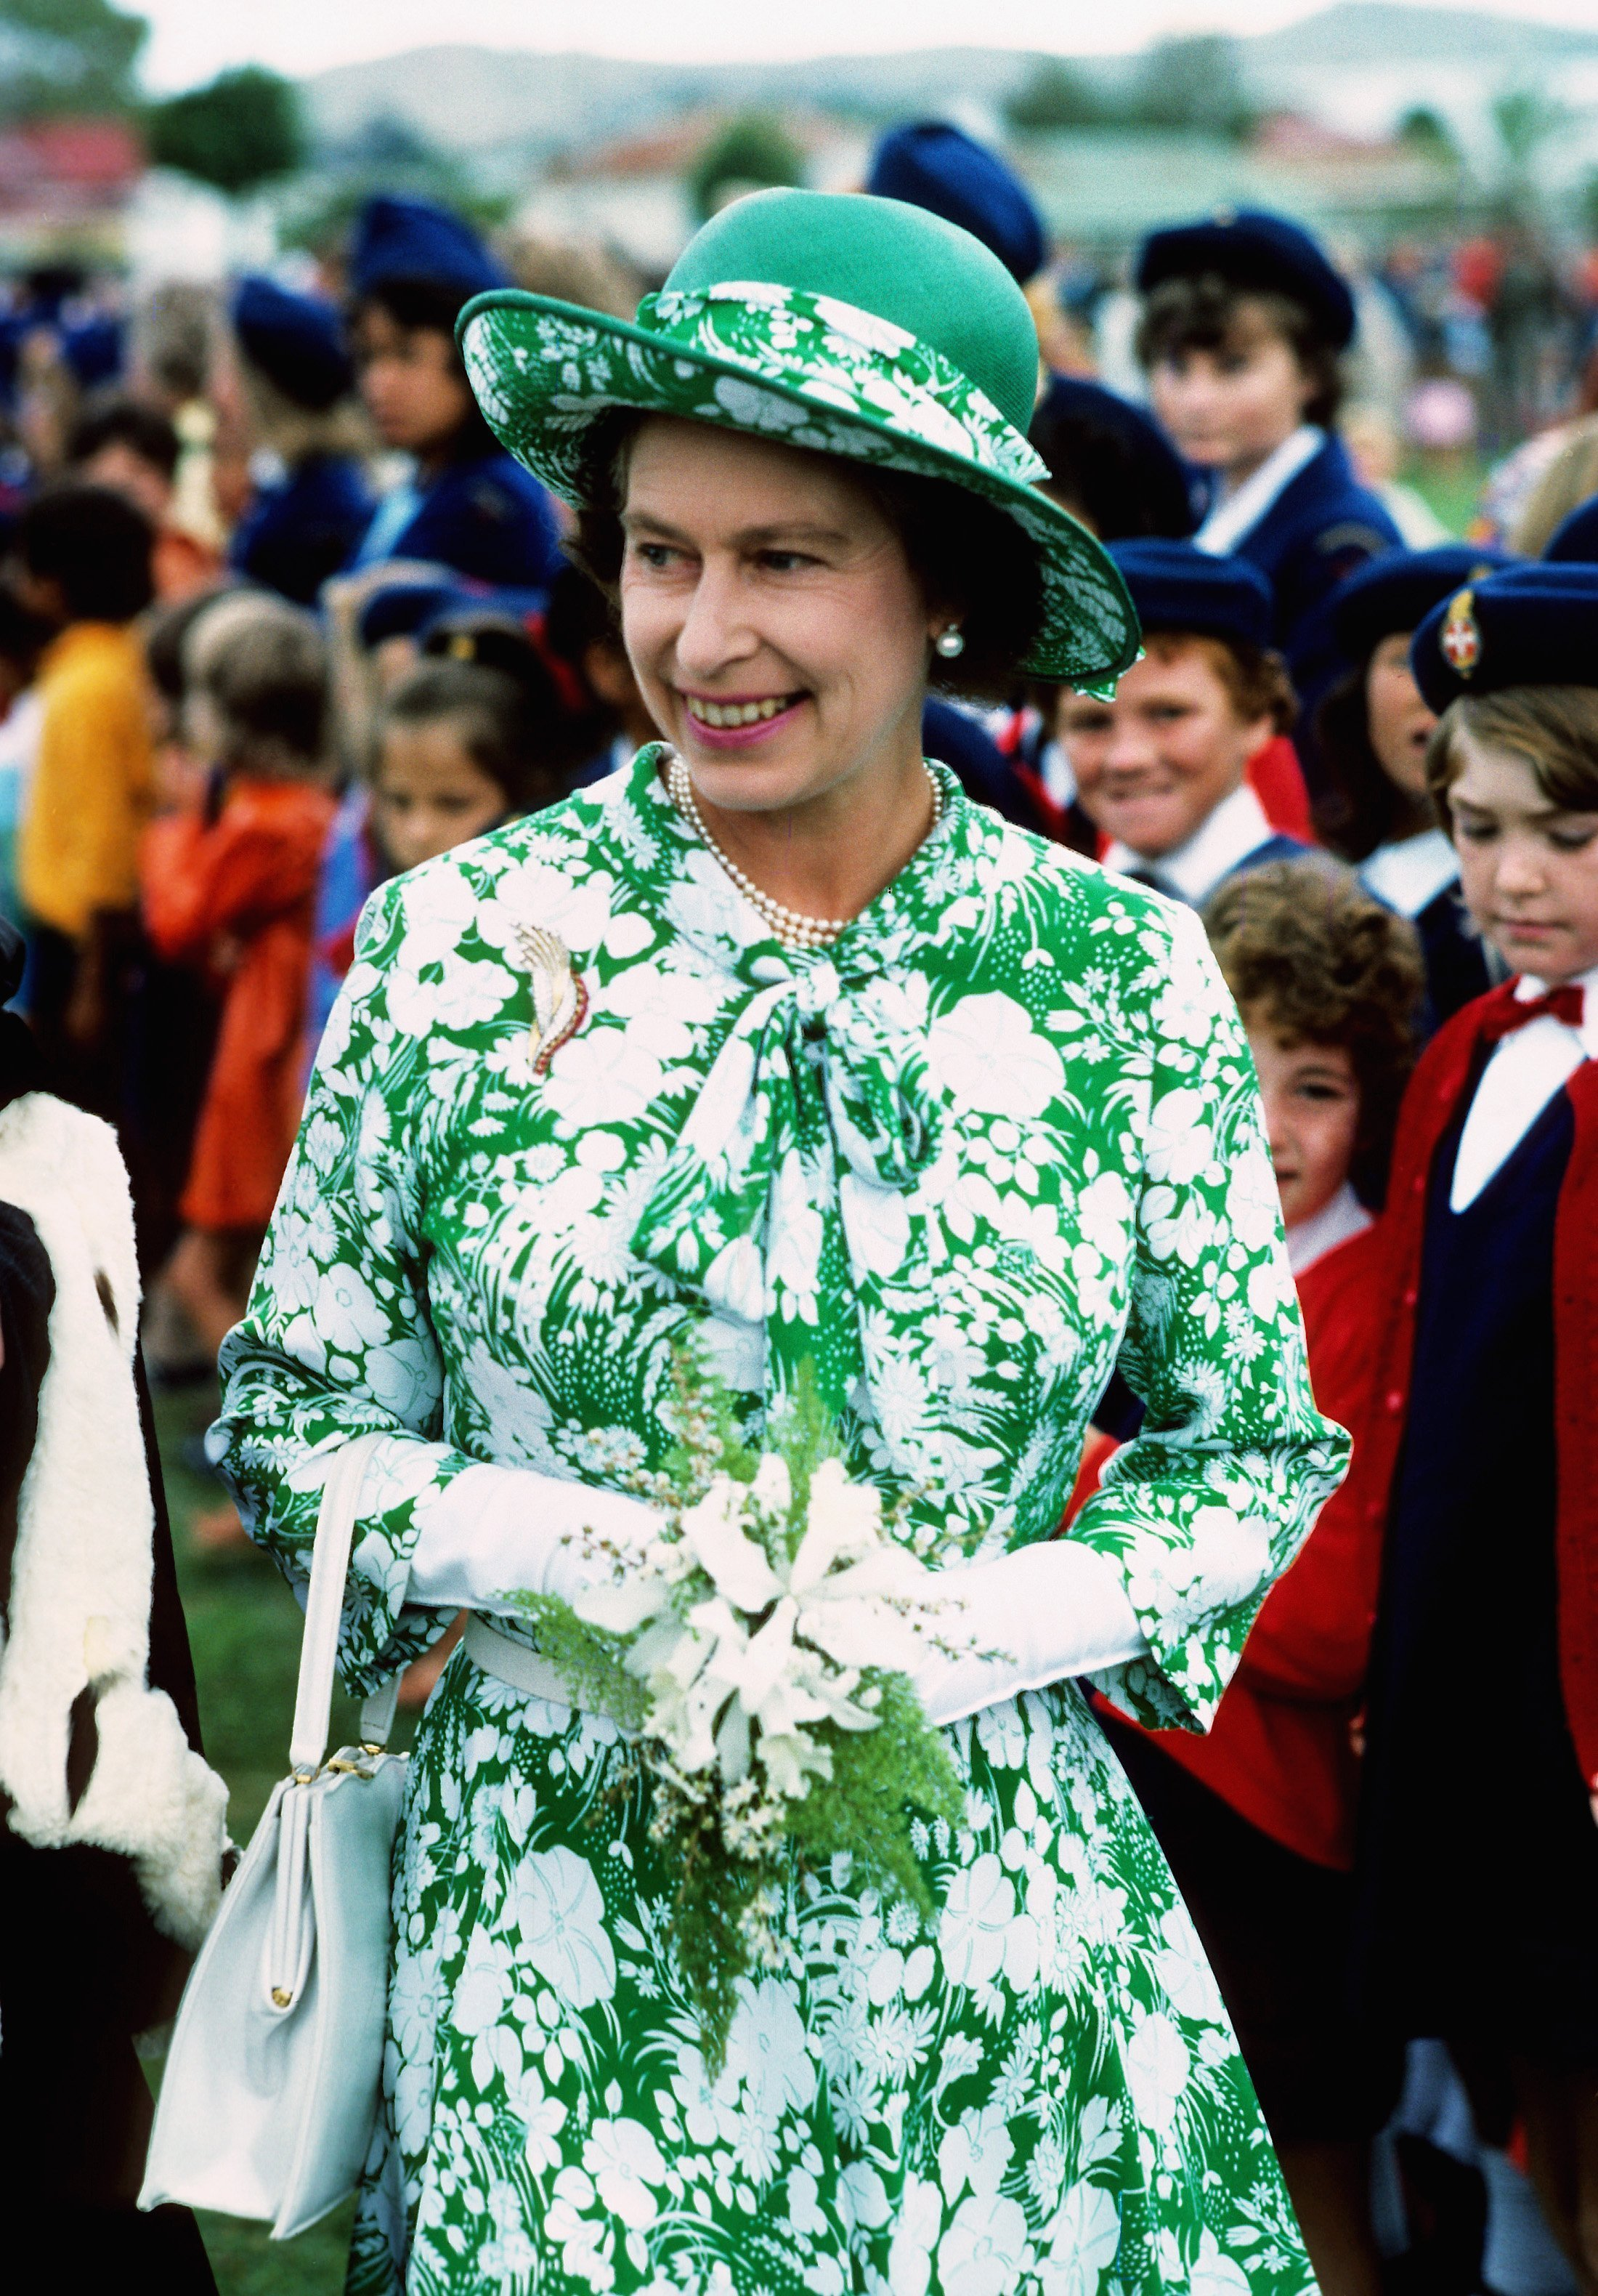 Queen Elizabeth ll smiles during her visit to New Zealand part of her Silver Jubilee Year Tour in March of 1977. | Source: Getty Images